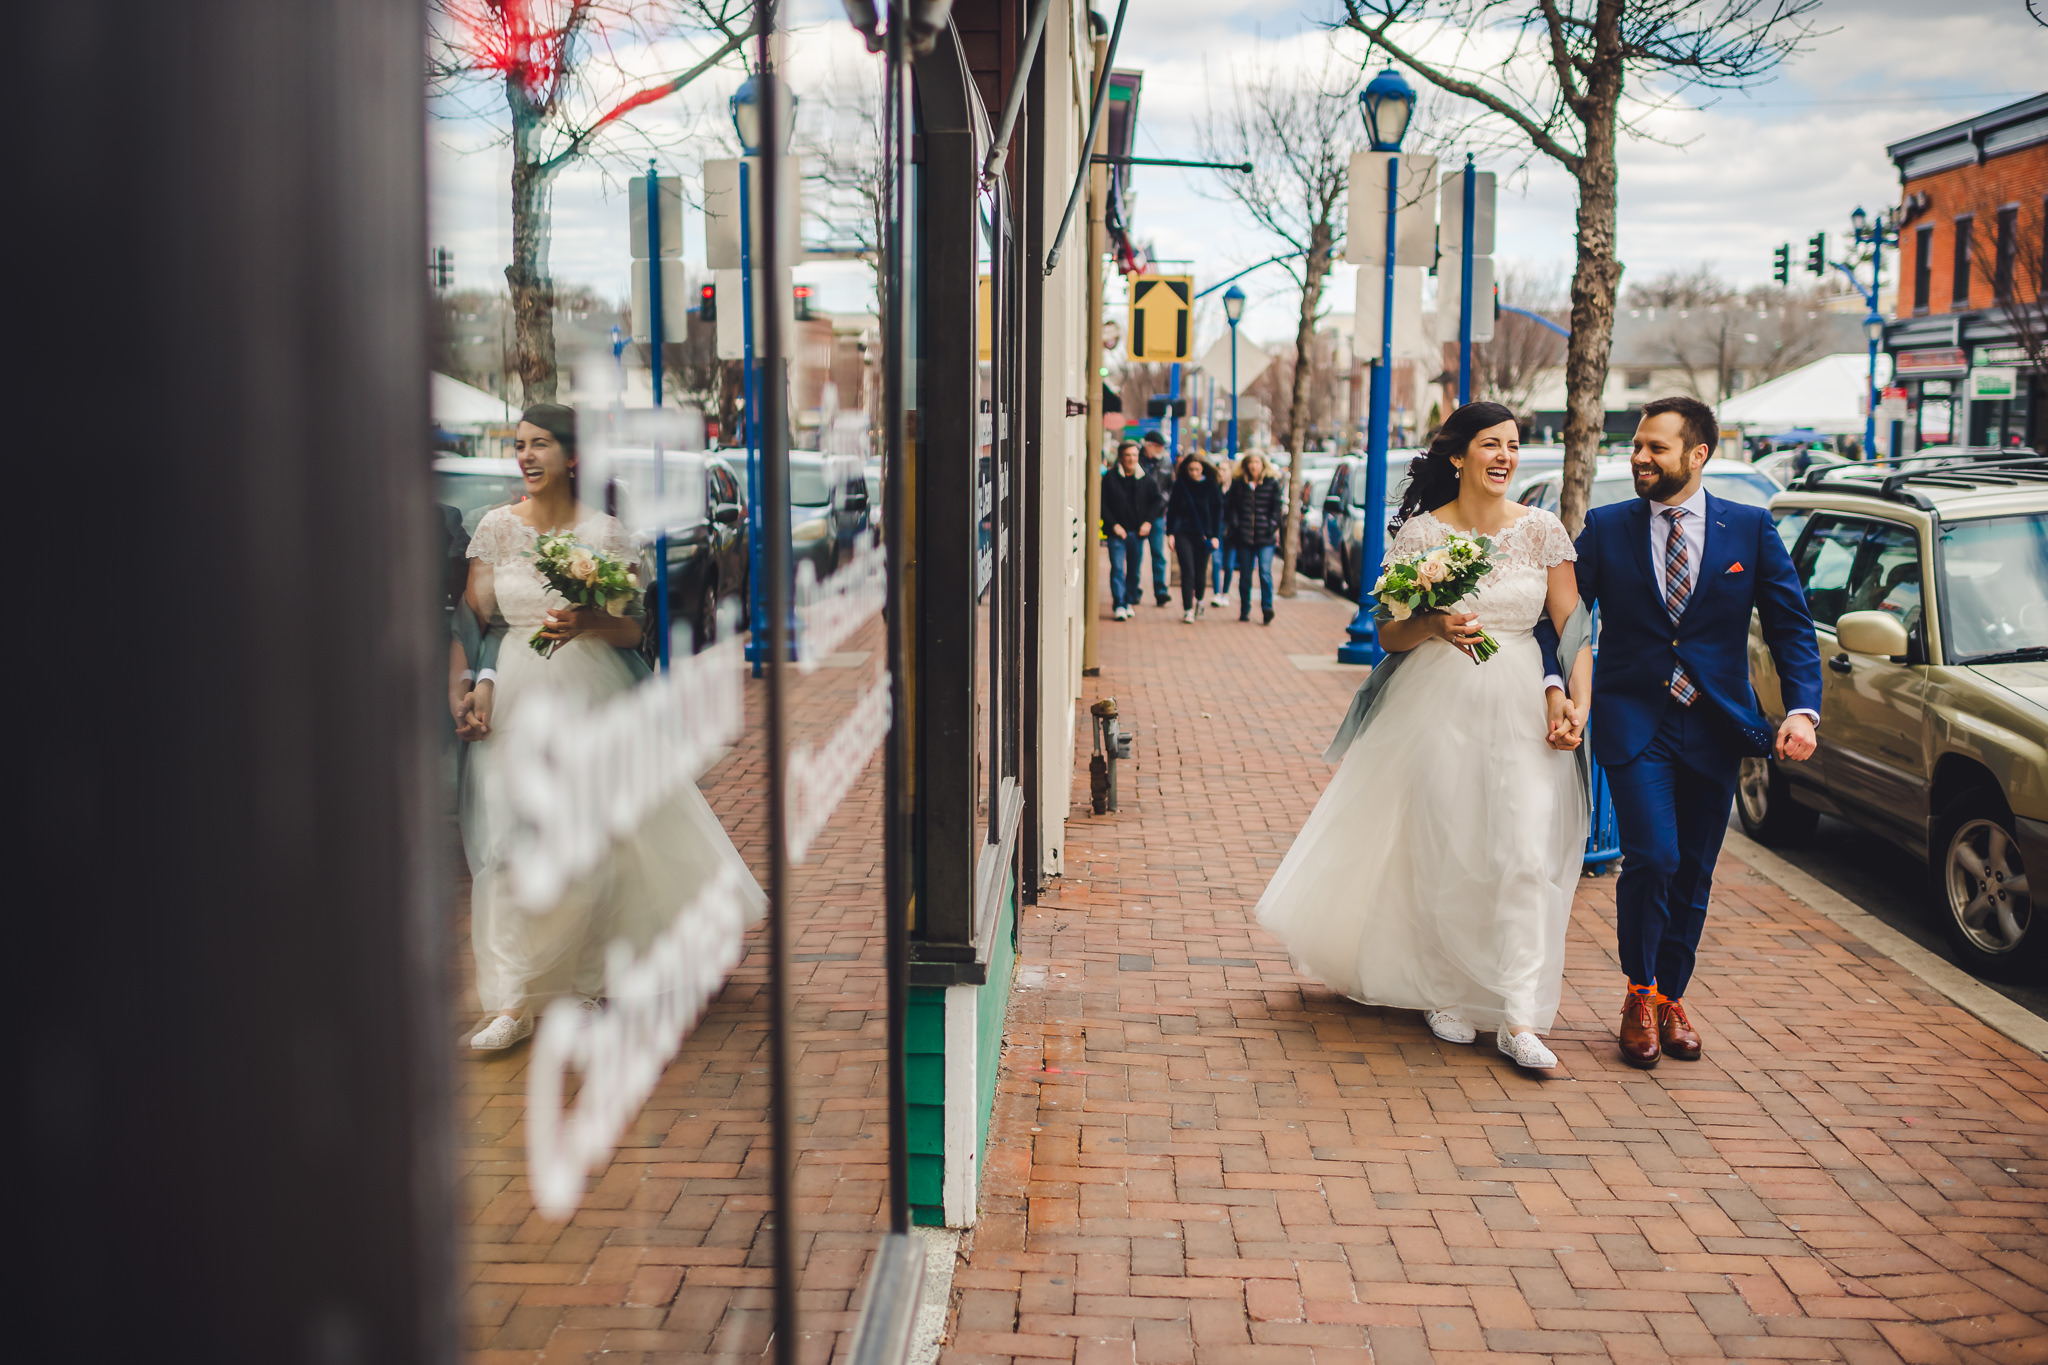 Anton-Drummond-Photography-Wedding-Photographers-in-Philadelphia